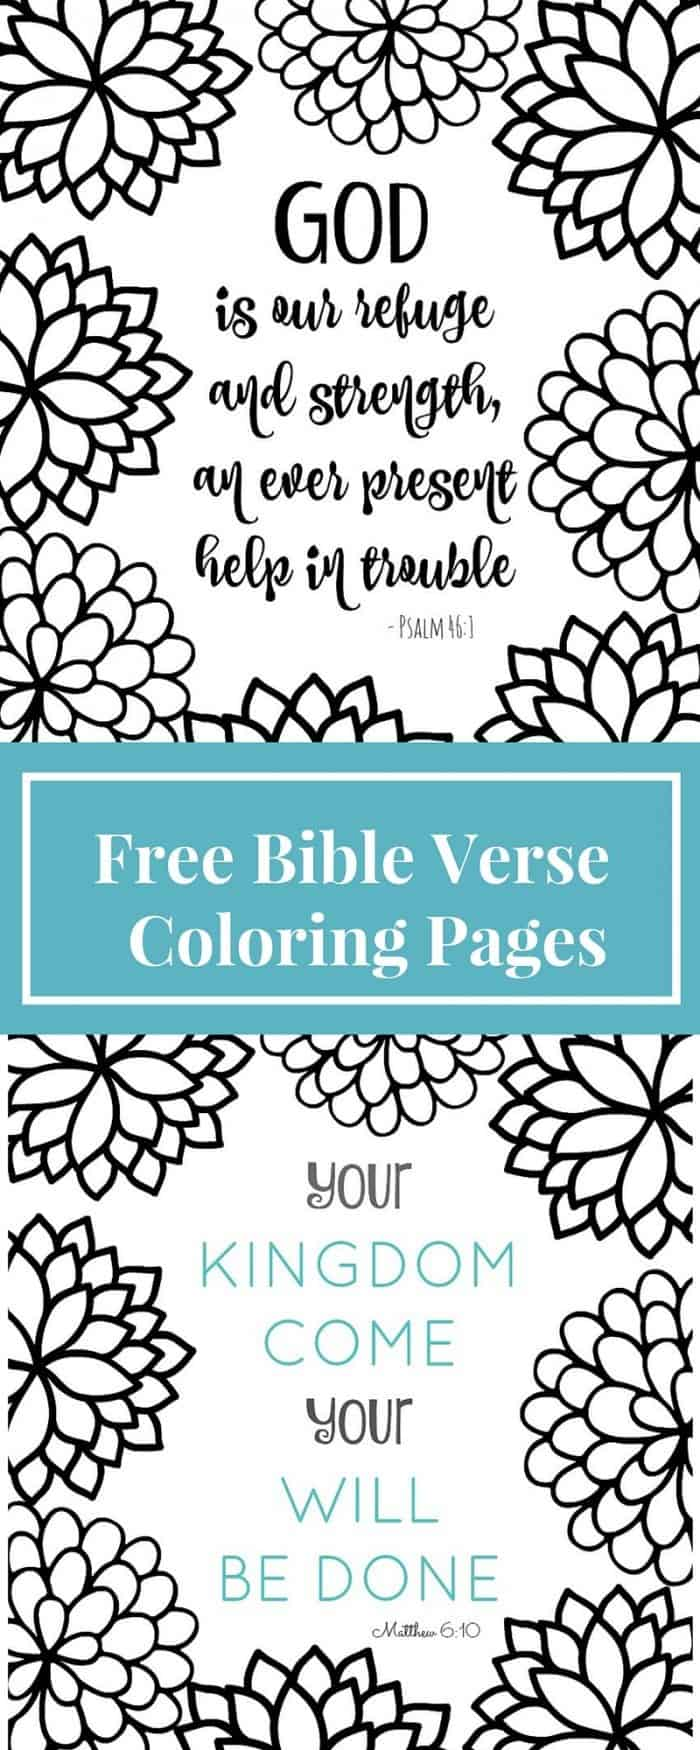 verse - Bible Verse Coloring Pages